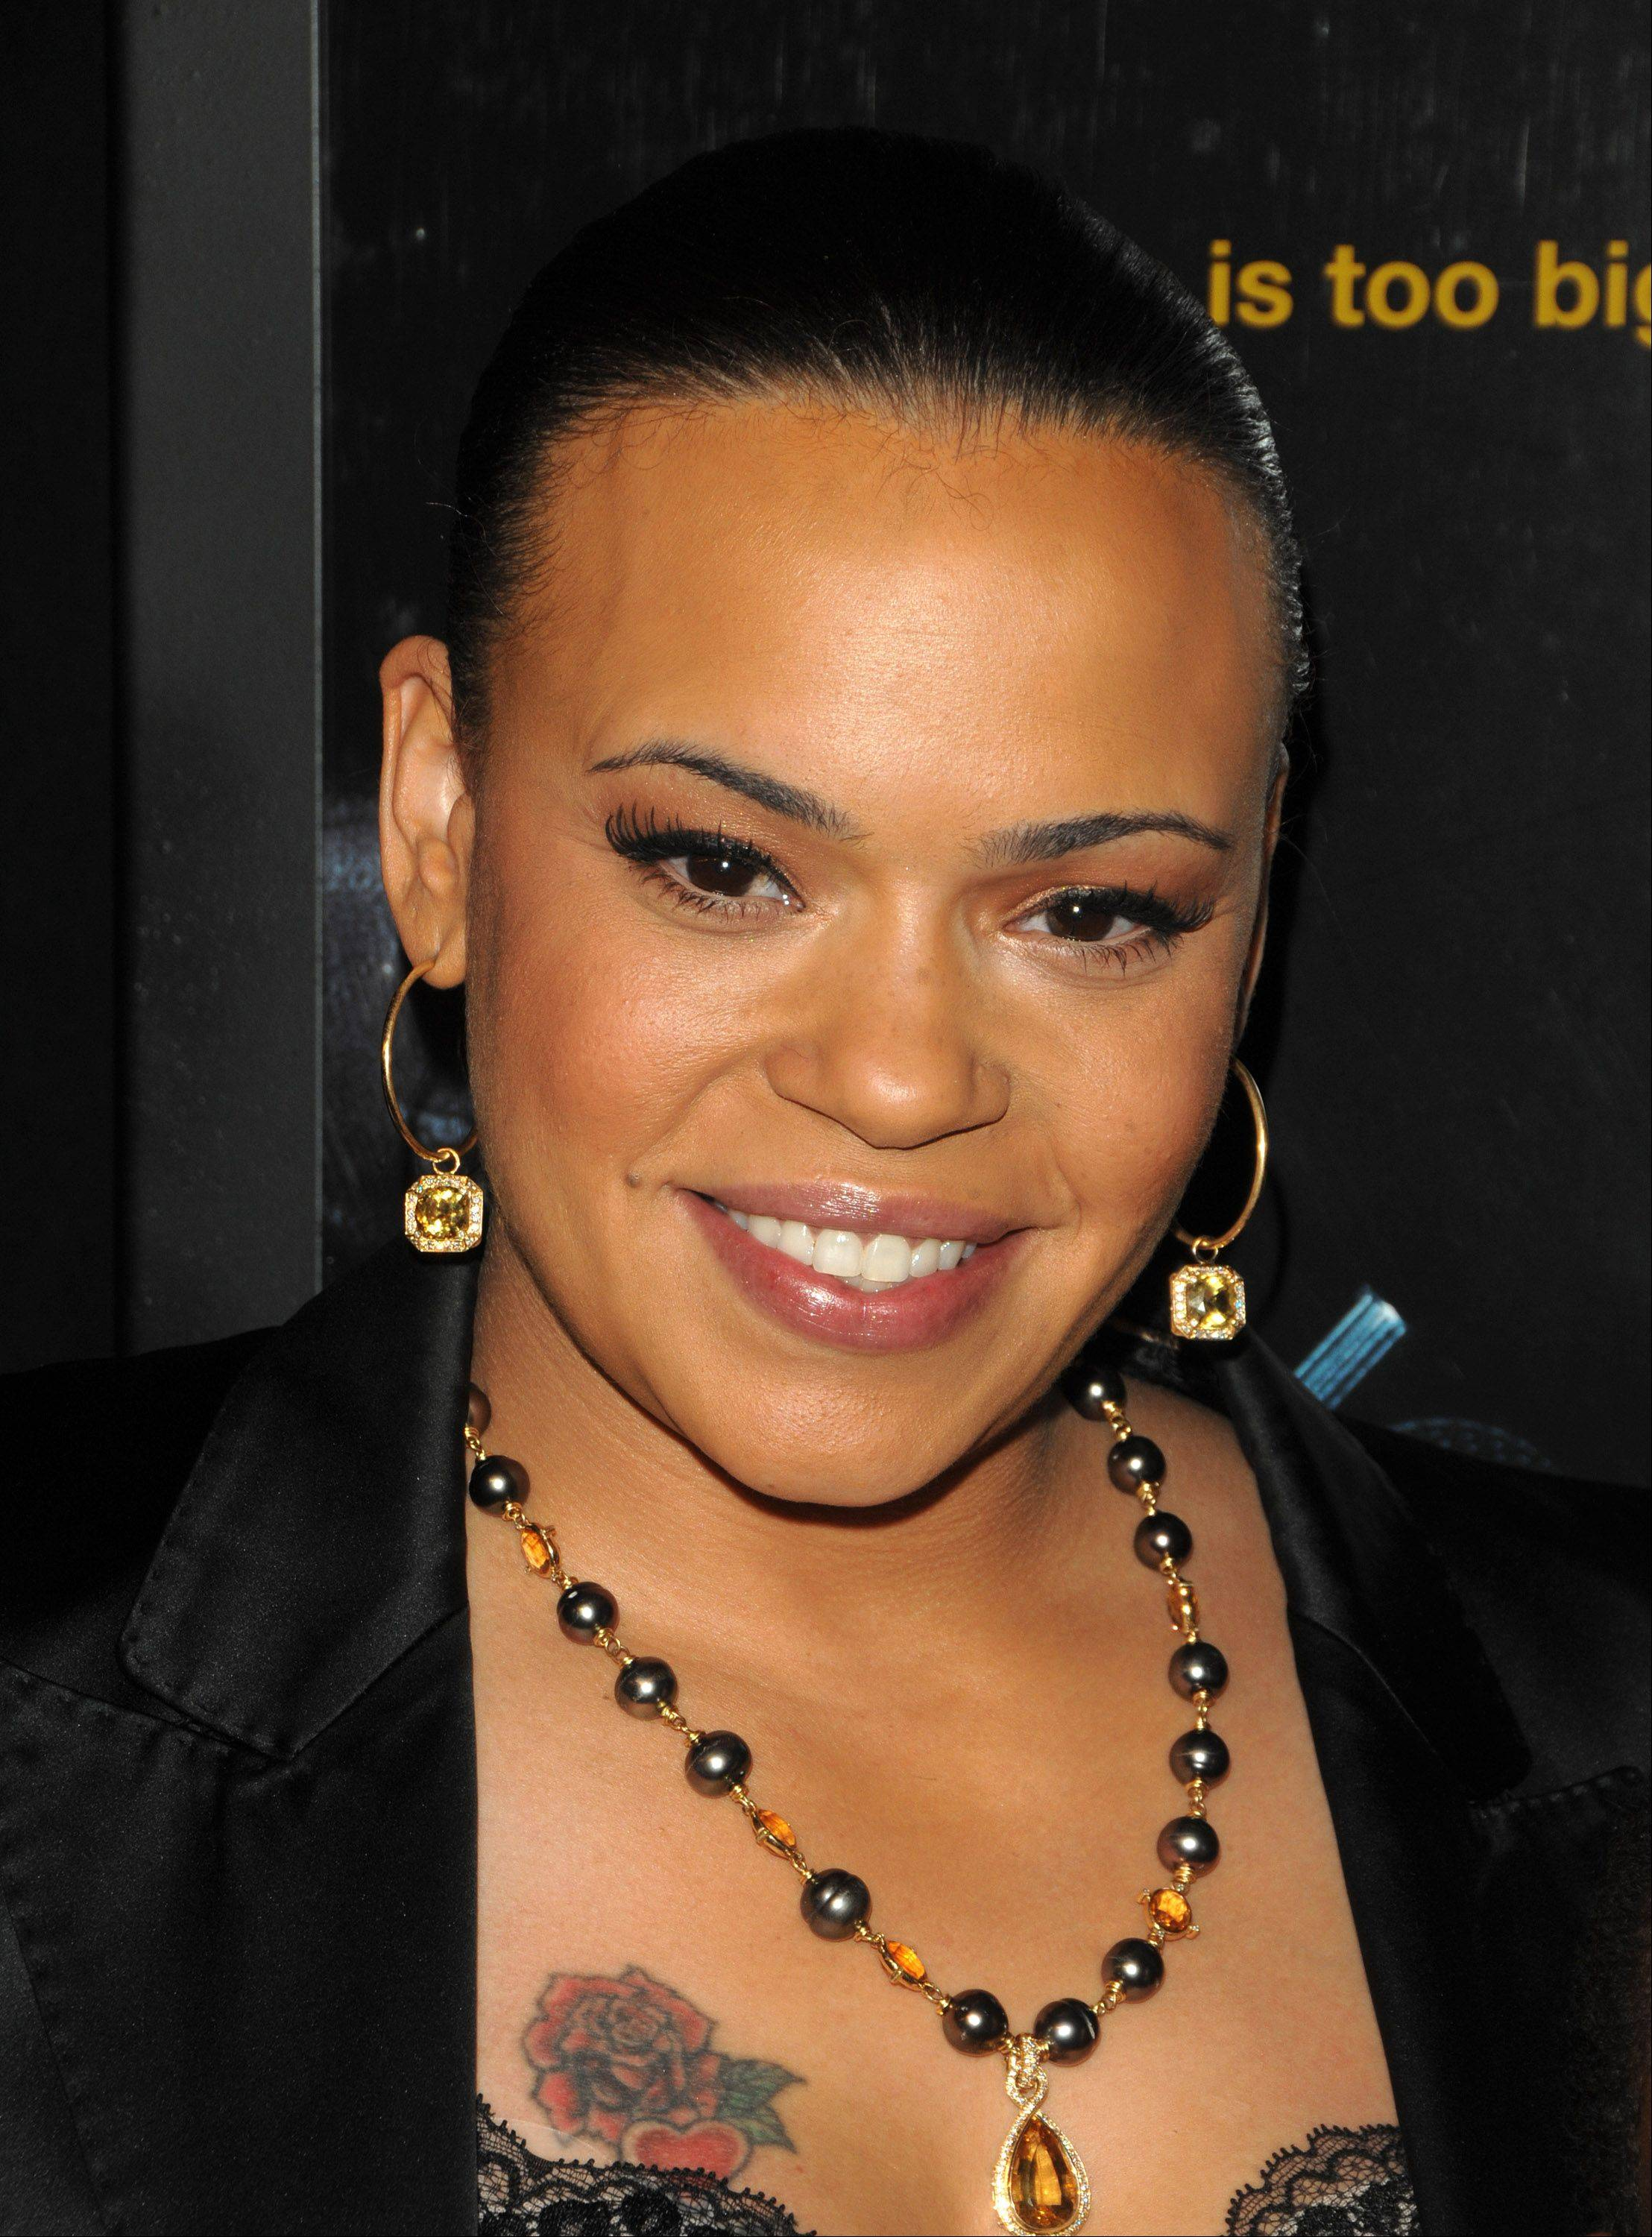 Faith Evans is on the bill for the Holiday Jam at the Arie Crown Theater in Chicago on Saturday, Dec. 27.